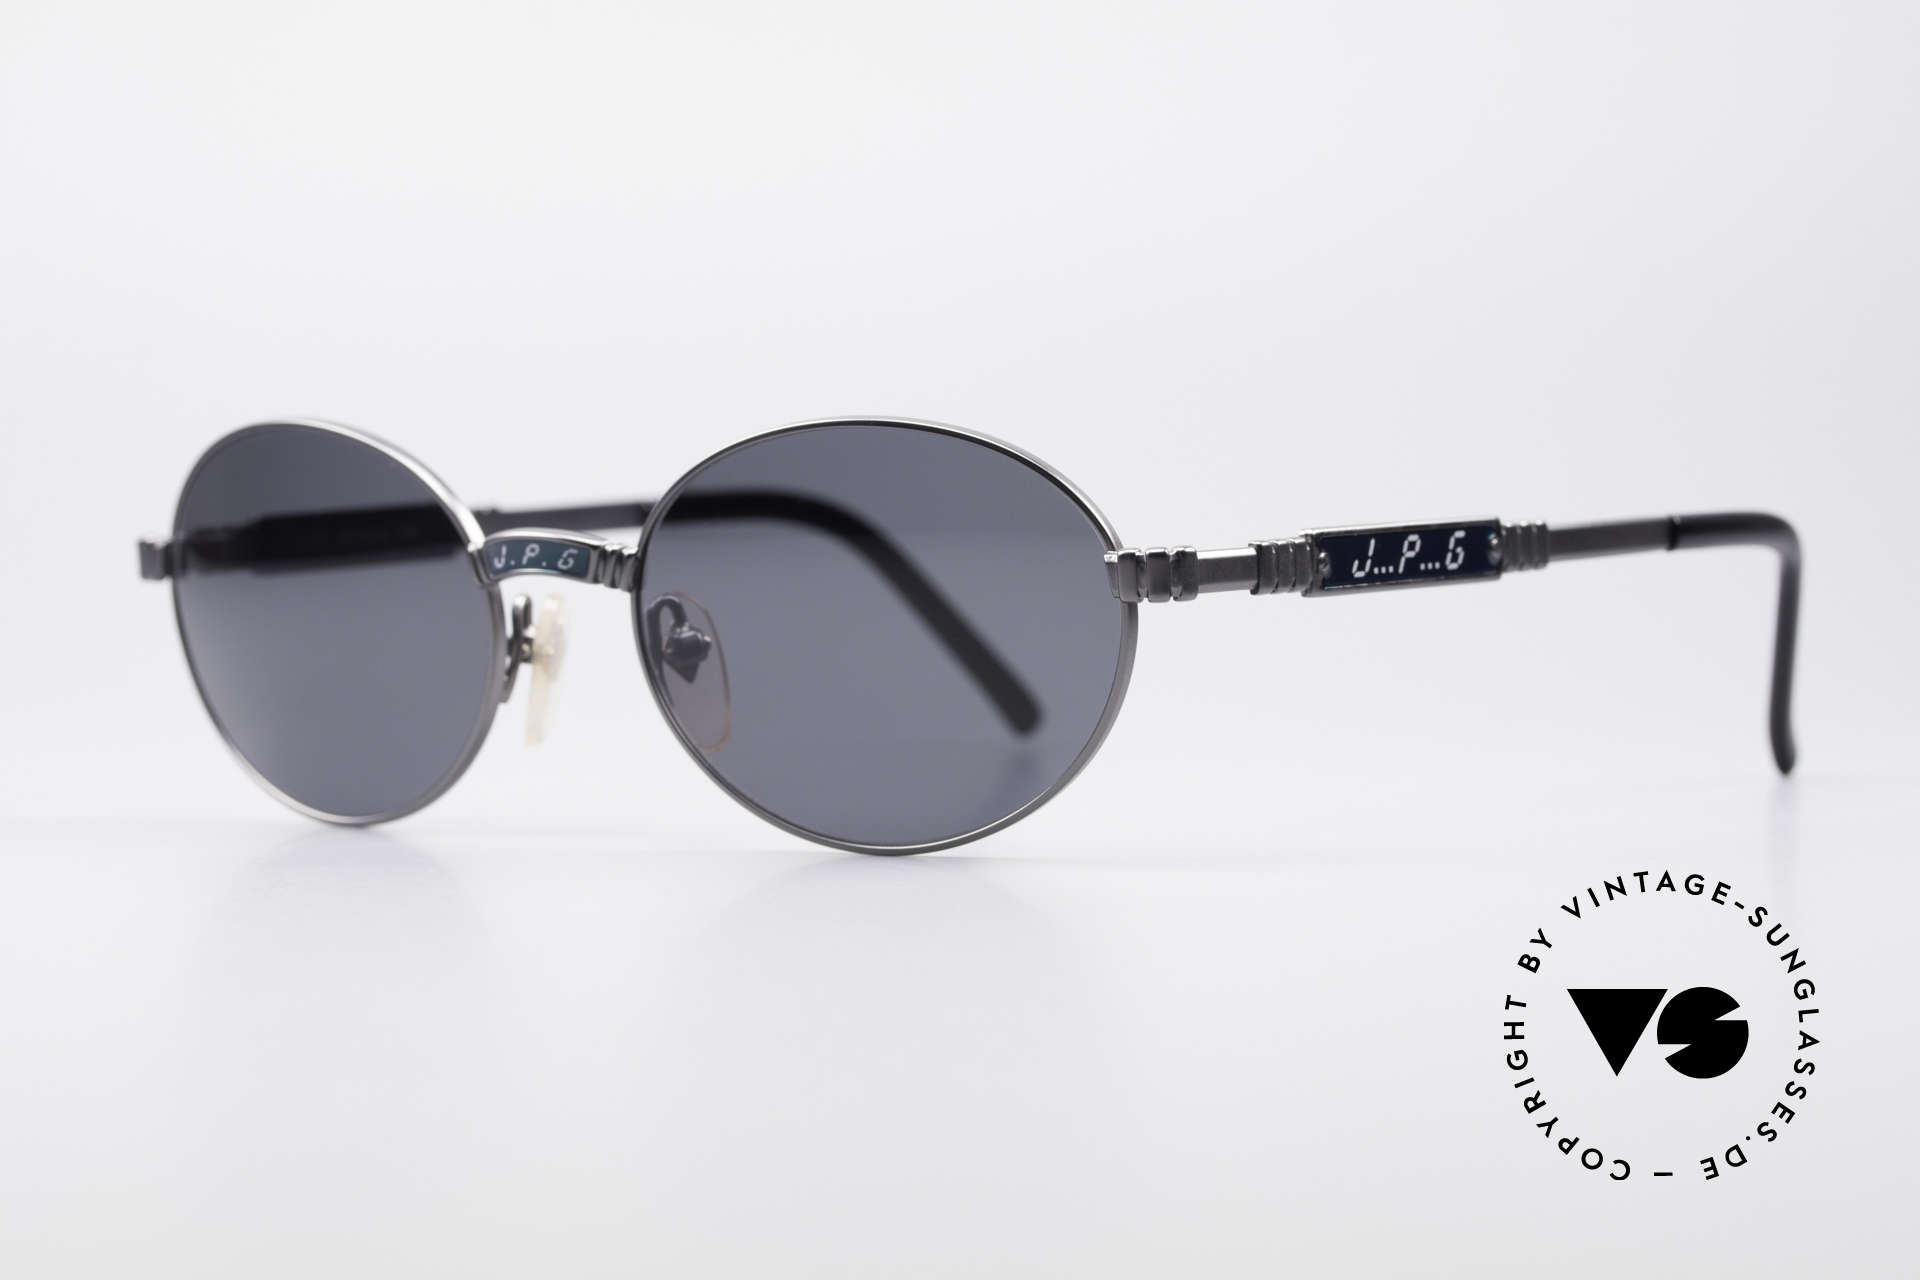 Jean Paul Gaultier 58-5104 Oval Designer Sunglasses, outstanding top-notch quality (characteristical JPG), Made for Men and Women